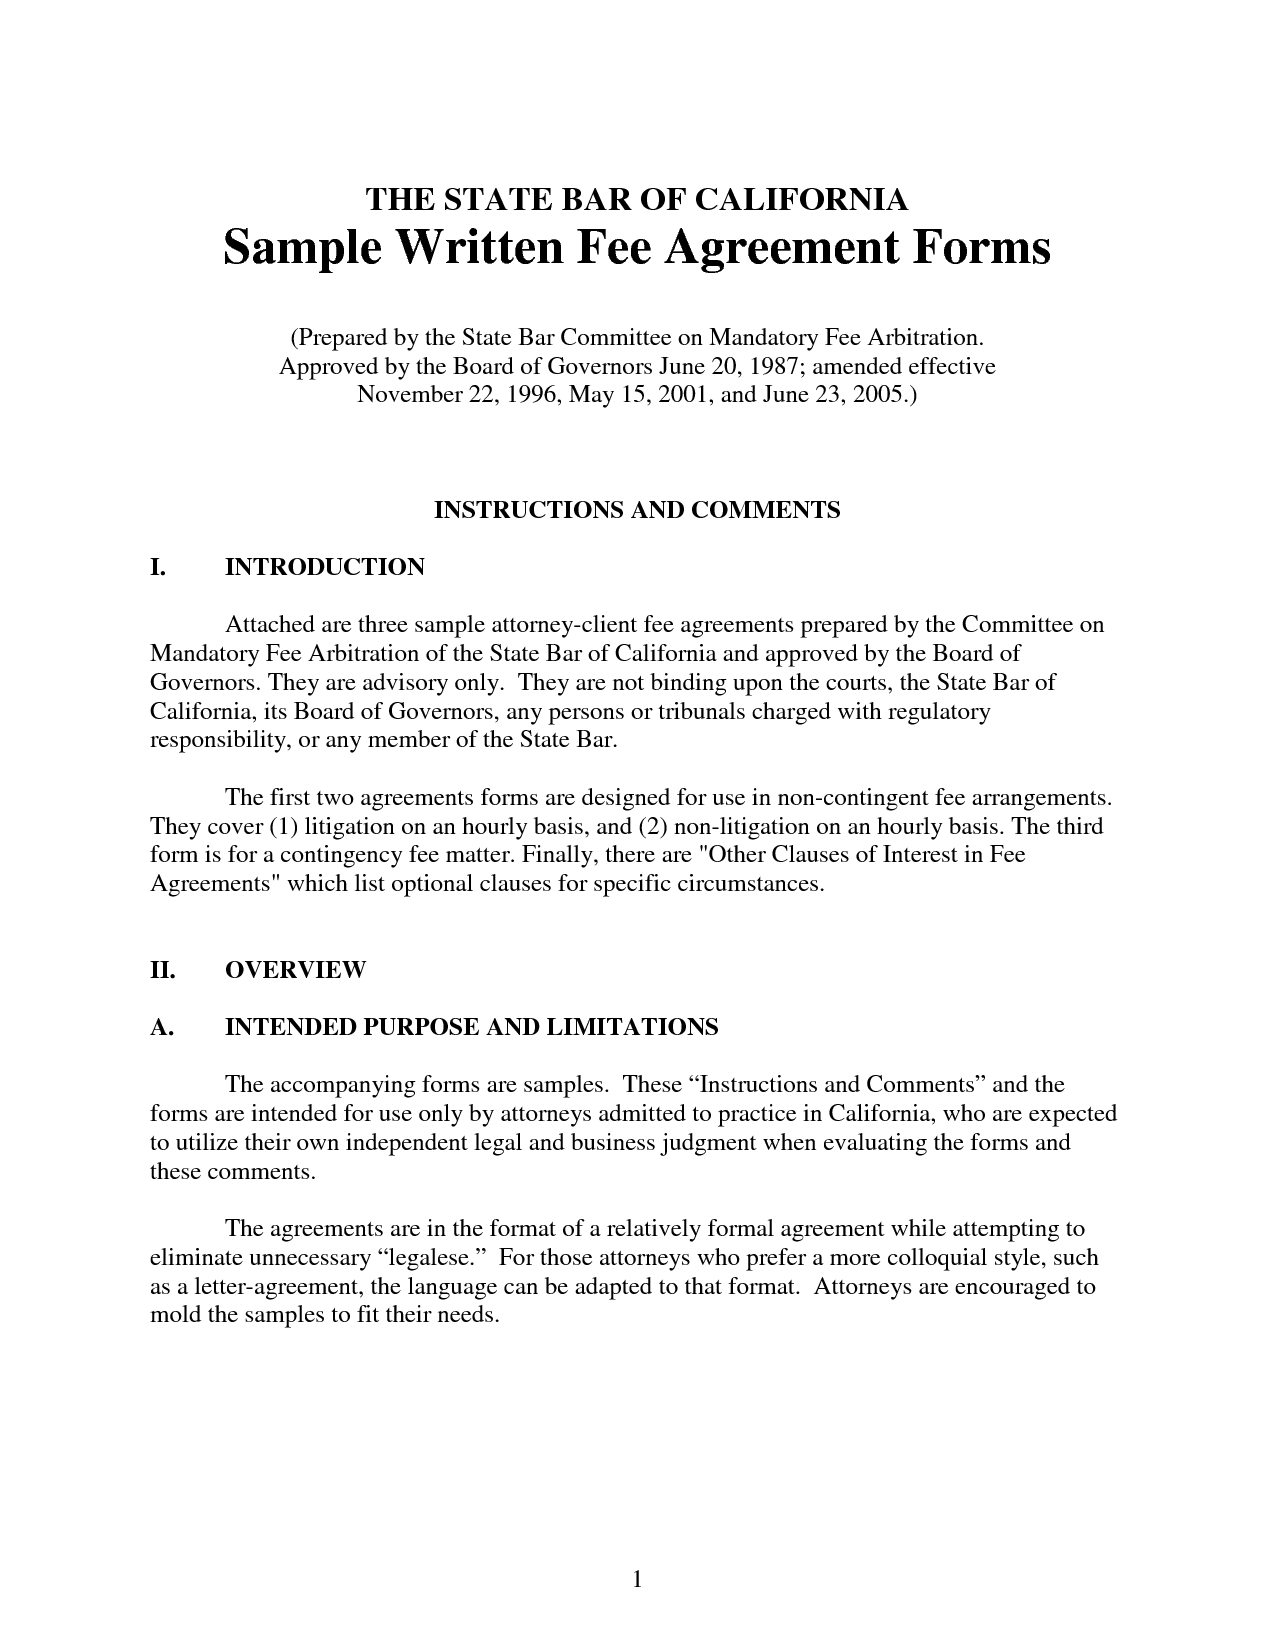 legal agreement form by tricky legal agreement forms | Real